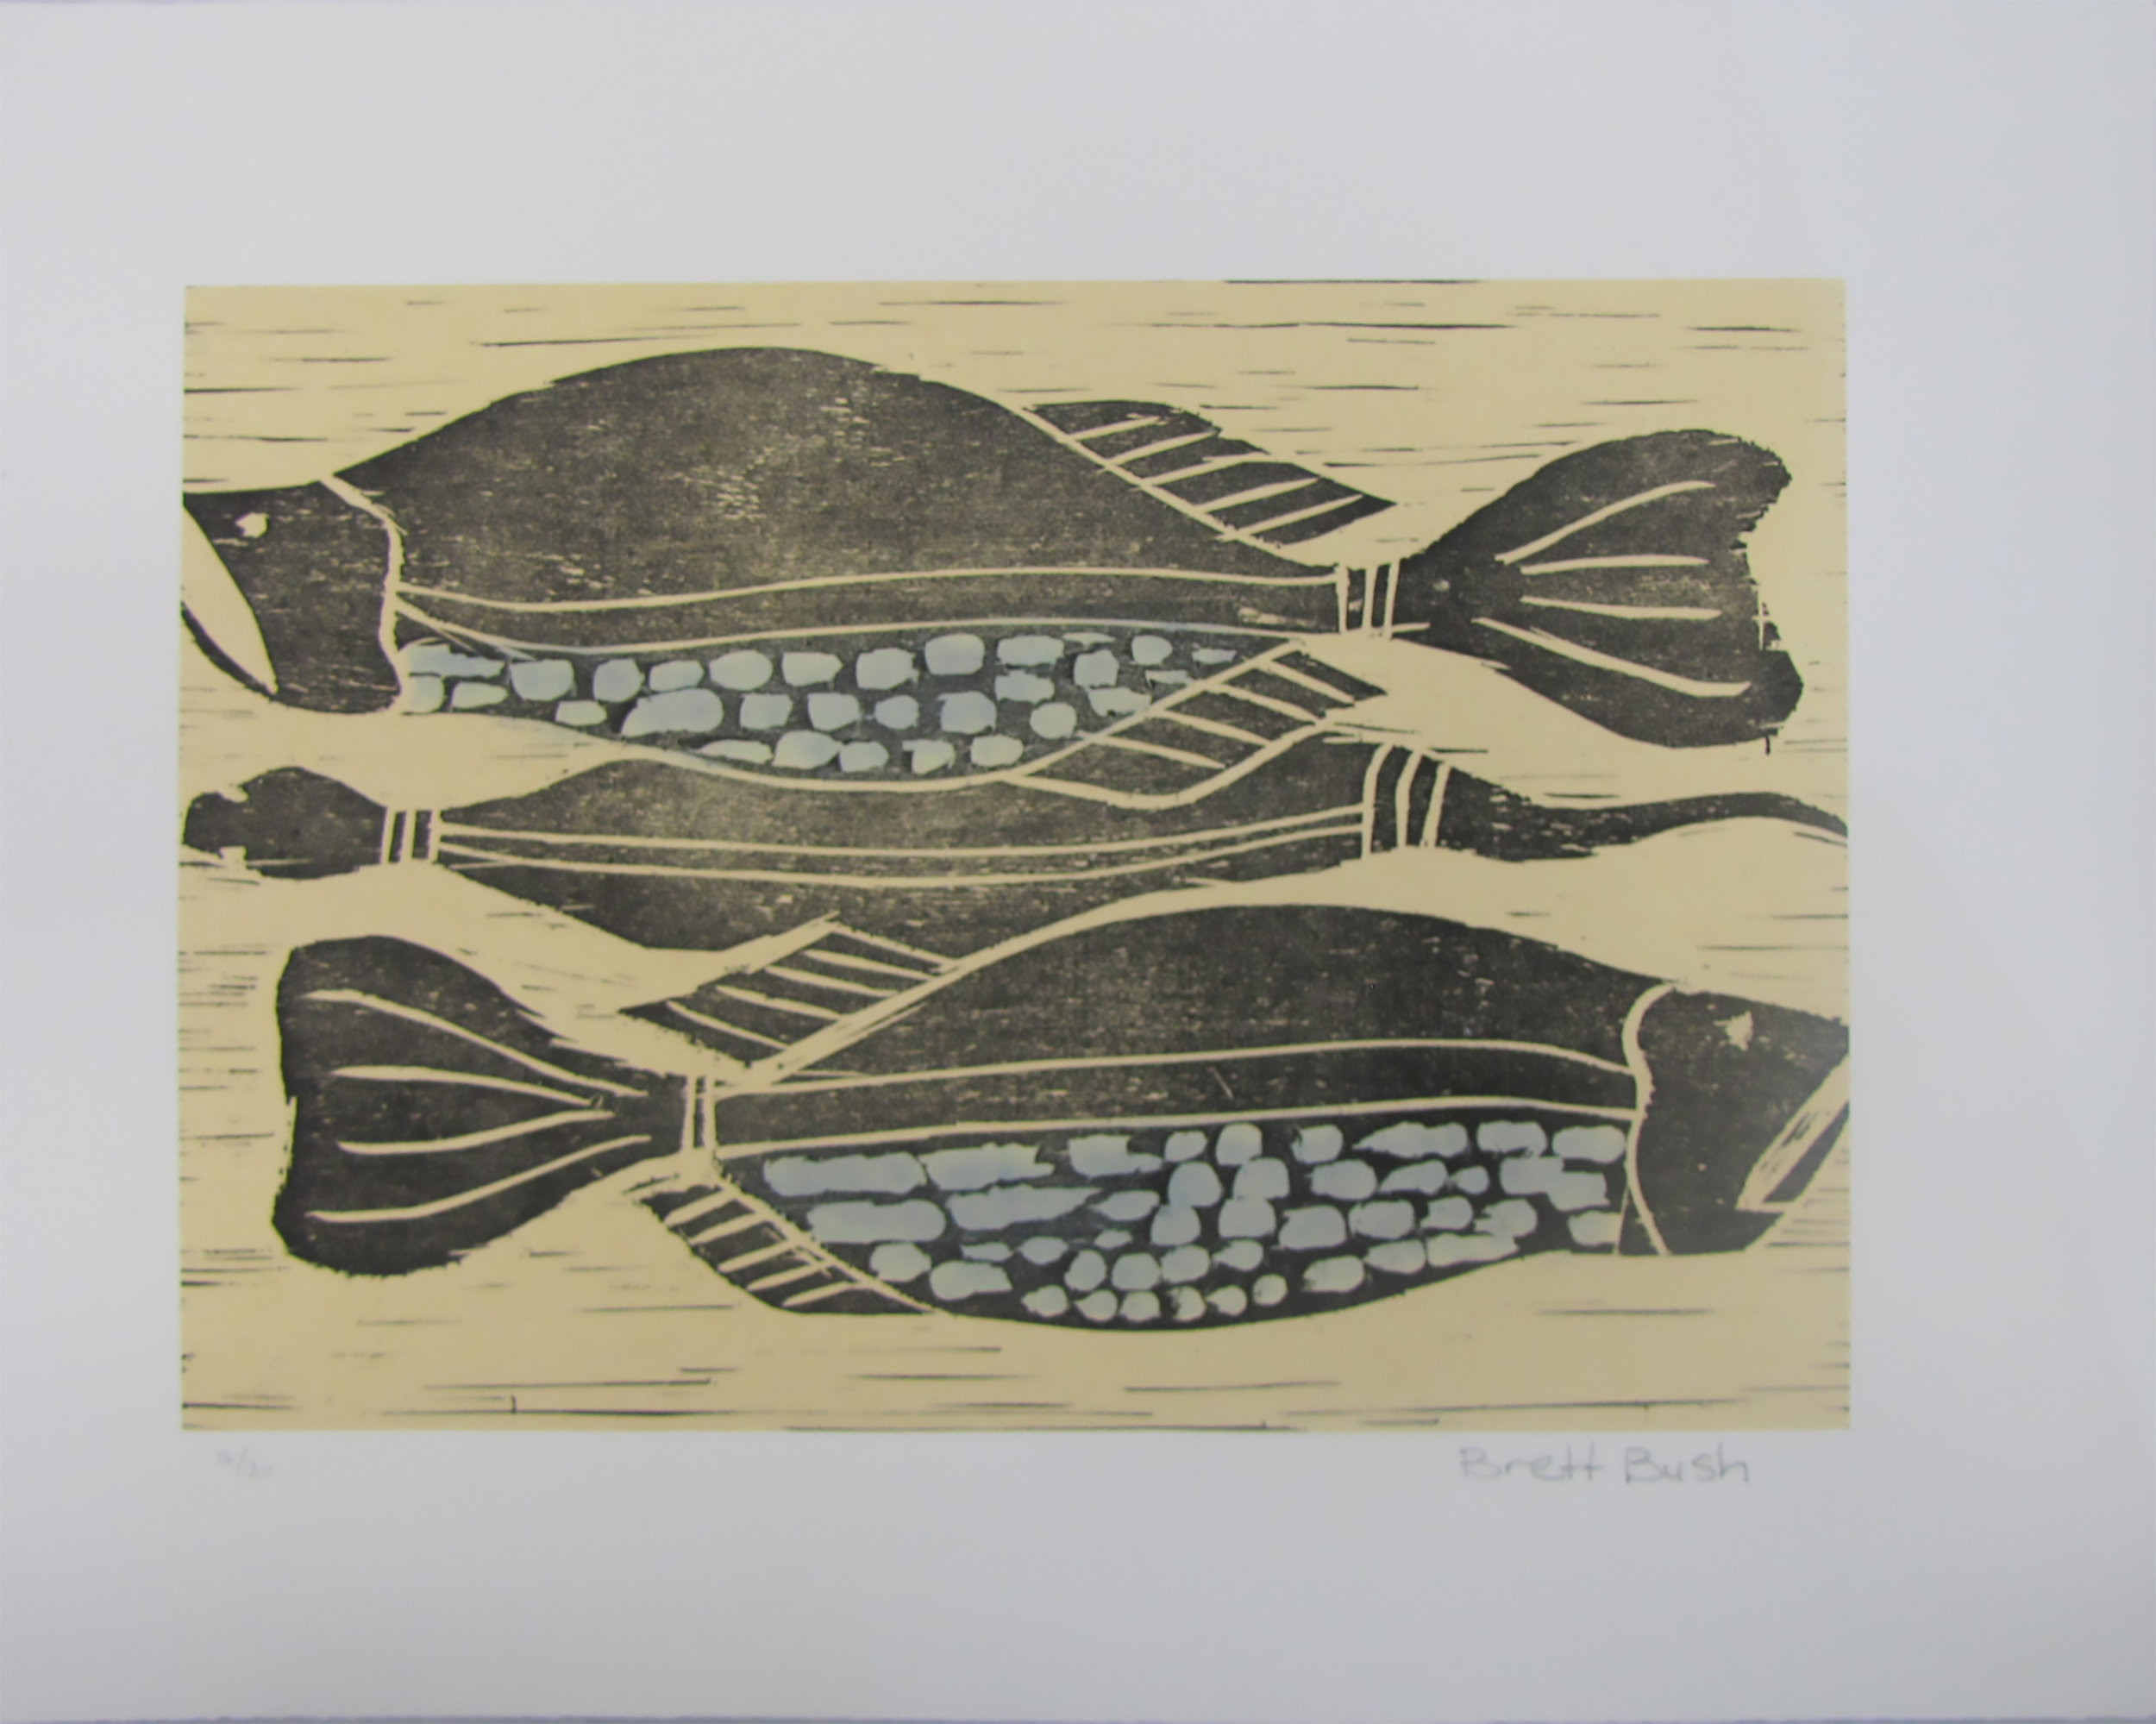 Franki Lane, Fish and Eel. 2016 Etching. Exhibition Proof 19 x 24.5 cm.  $220 unframed Editions 6/30, 8/30, 9/30 & 10/30 (unframed) also available